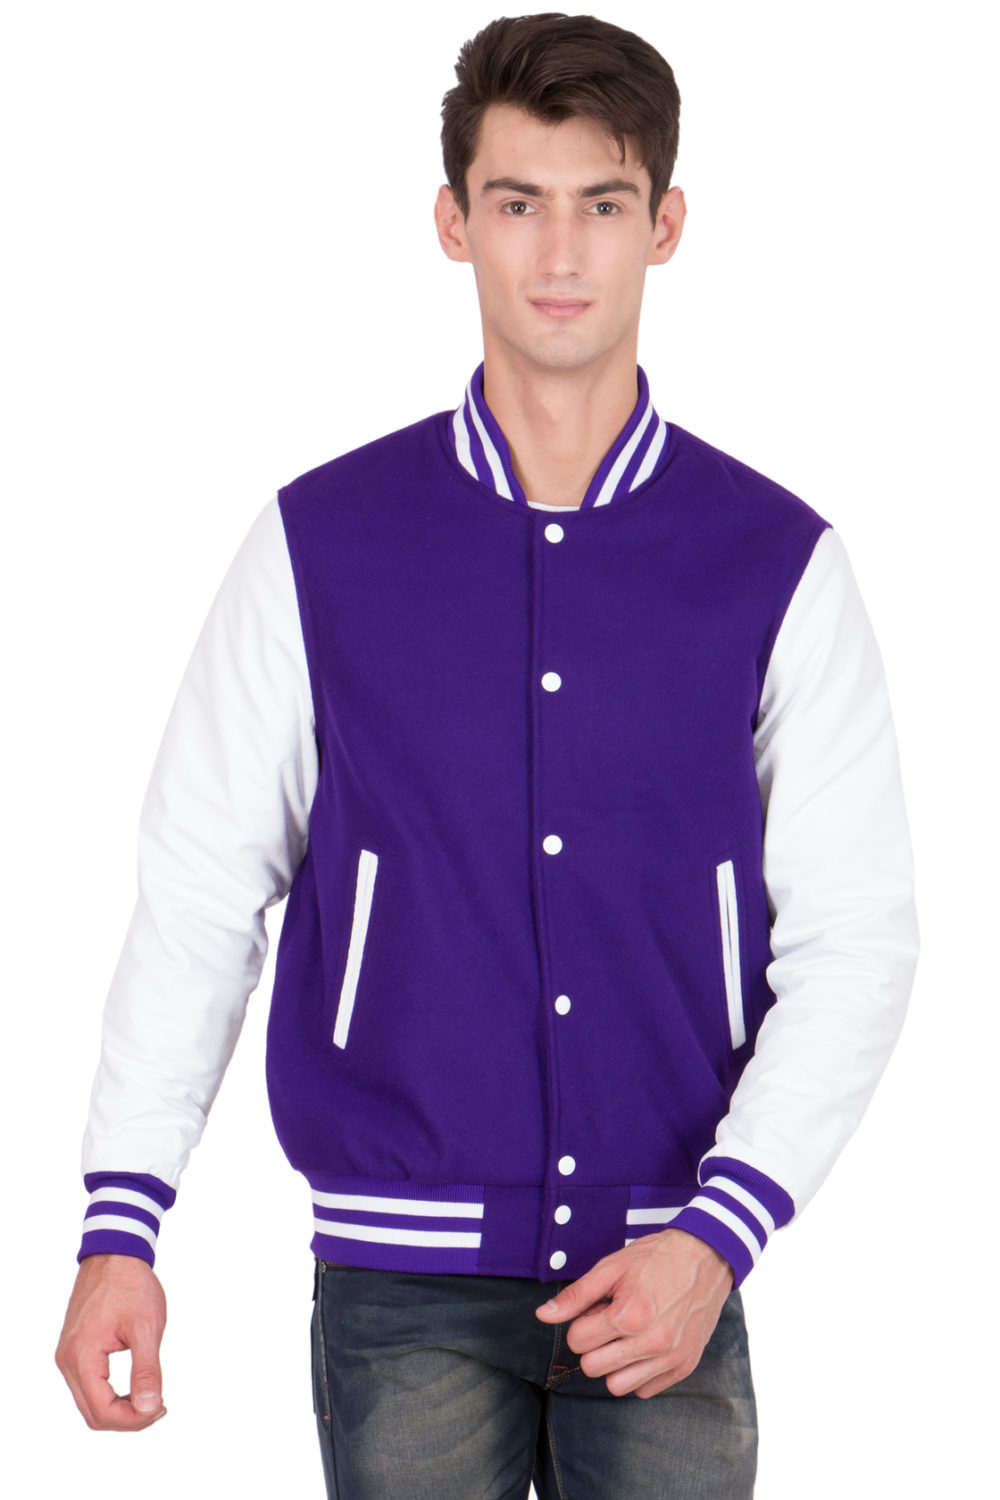 WHITE LEATHER SLEEVES & PURPLE WOOL BODY VARSITY JACKET-MEN